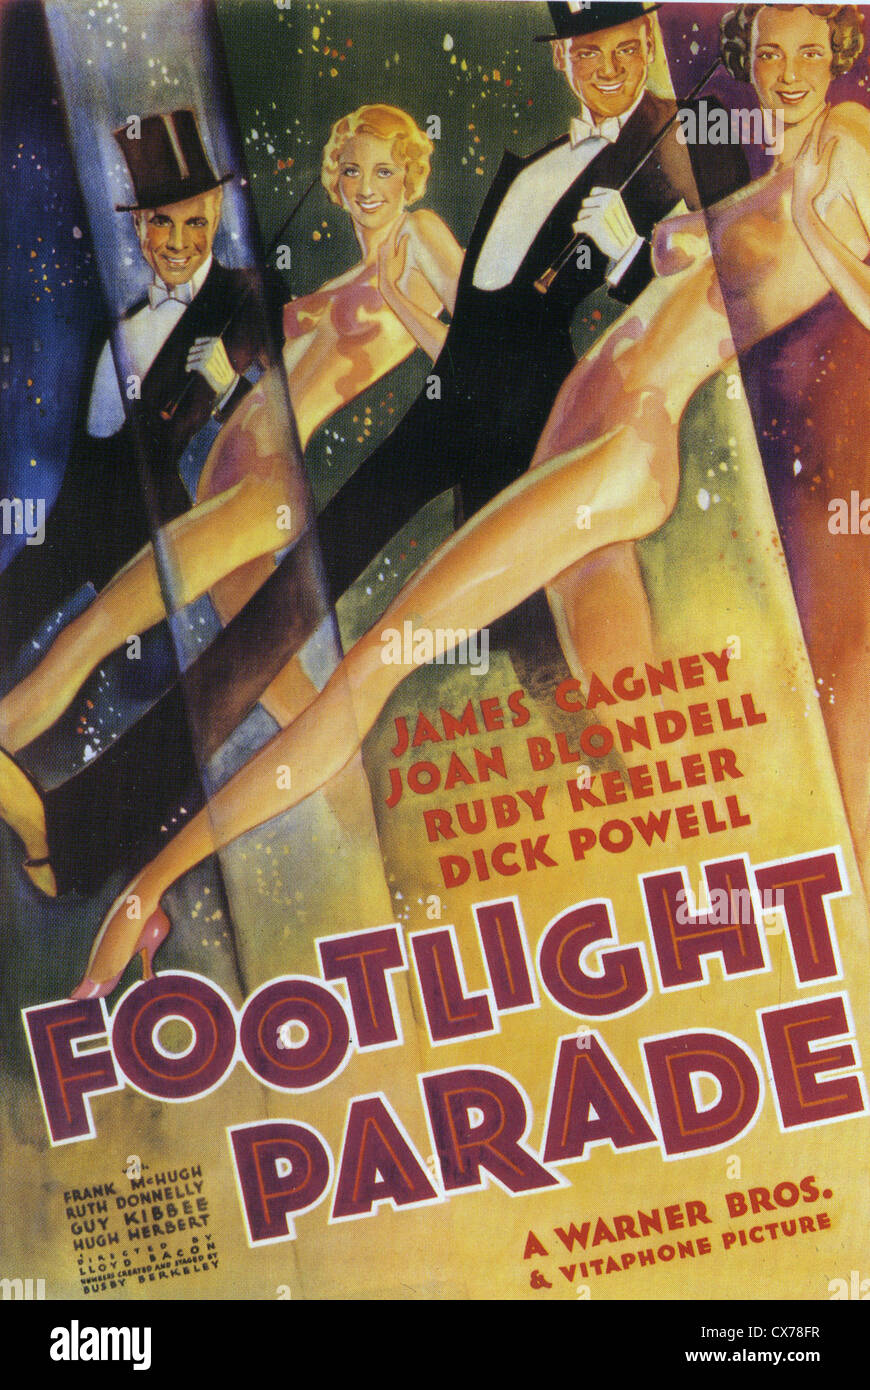 42nd STREET Poster for 1933 Warner Bros film with Bebe  Daniels, James Cagney and Joan Blondell - Stock Image